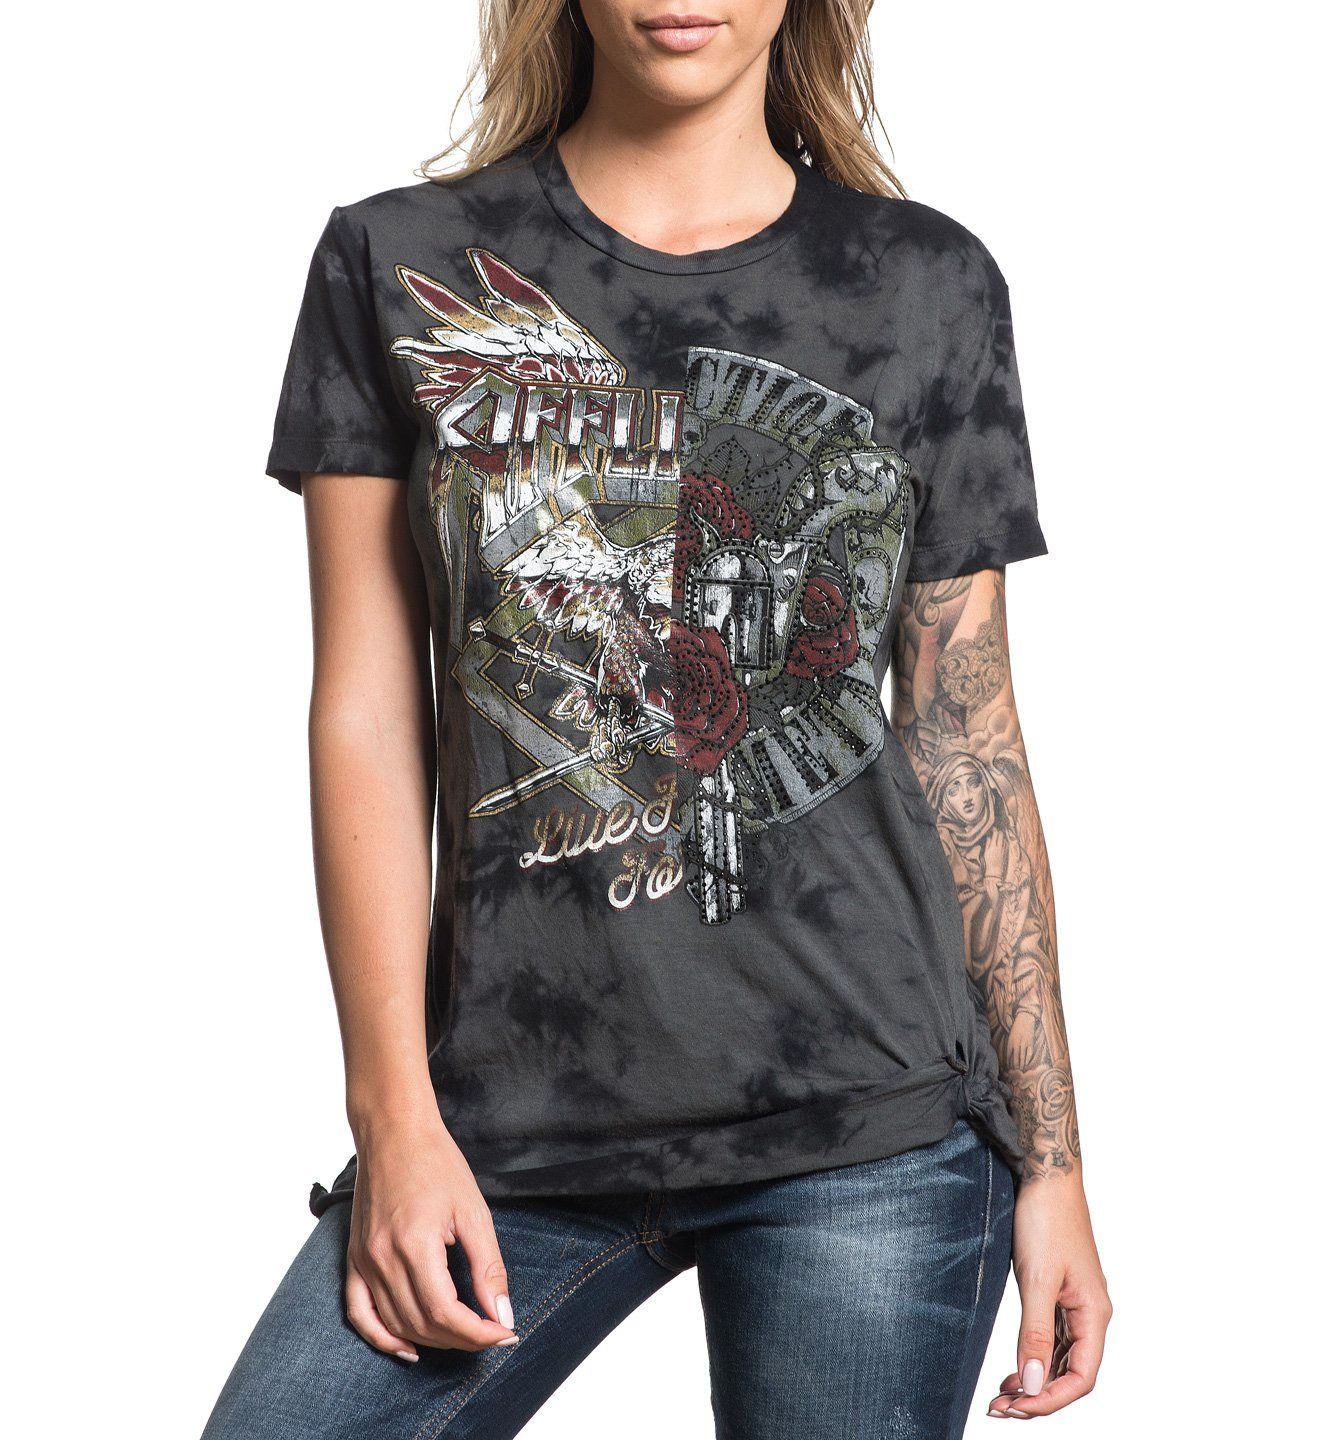 Womens Short Sleeve Tees - Roadie Split